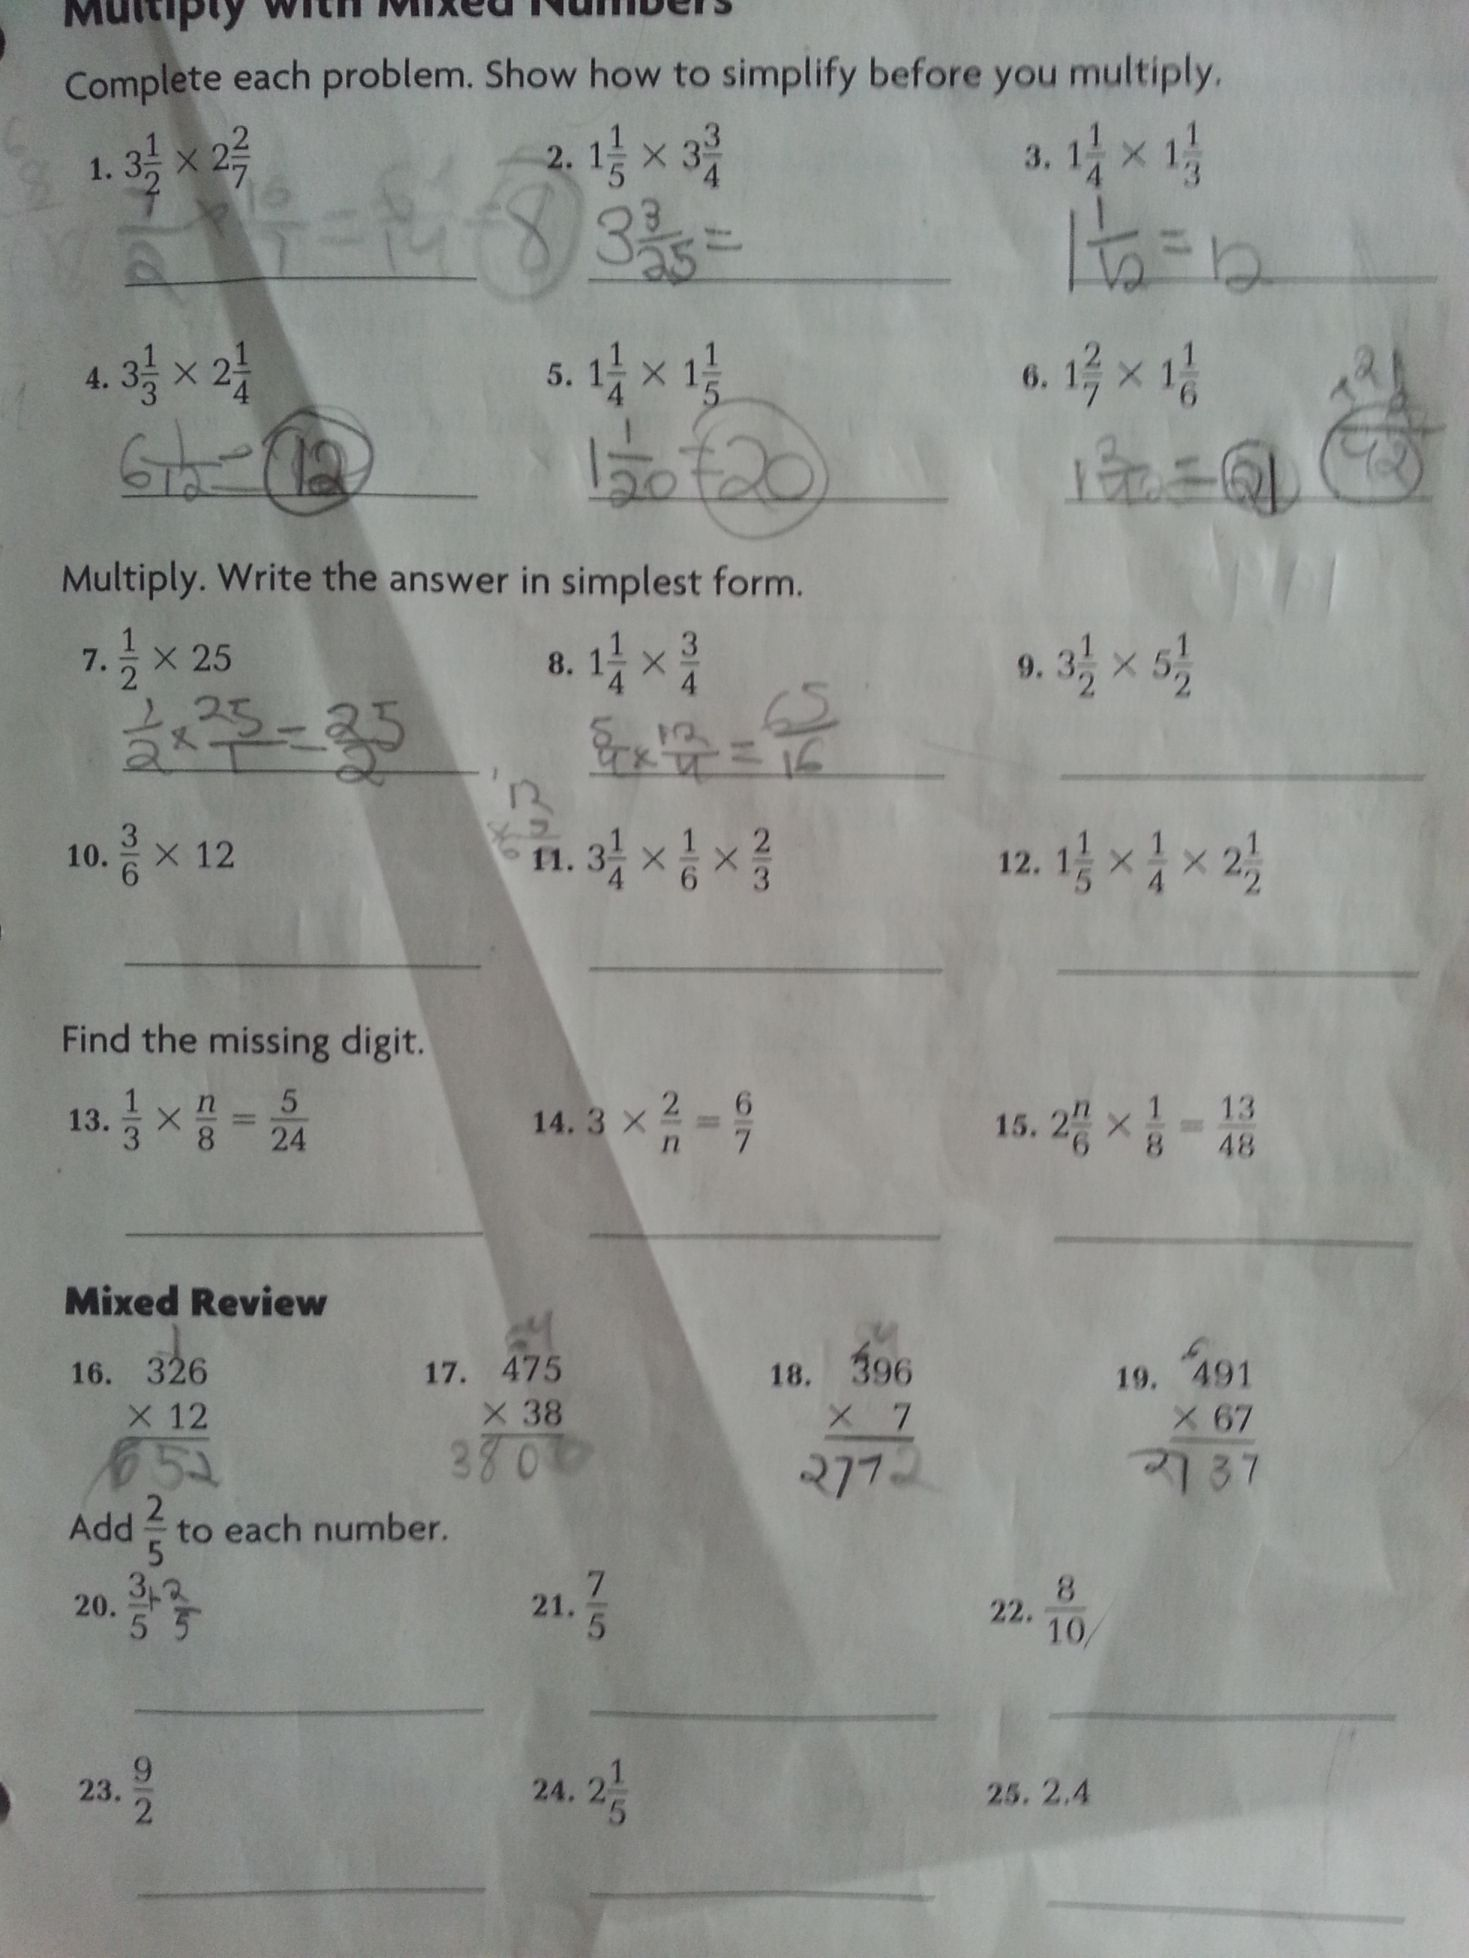 Homework help multiplication